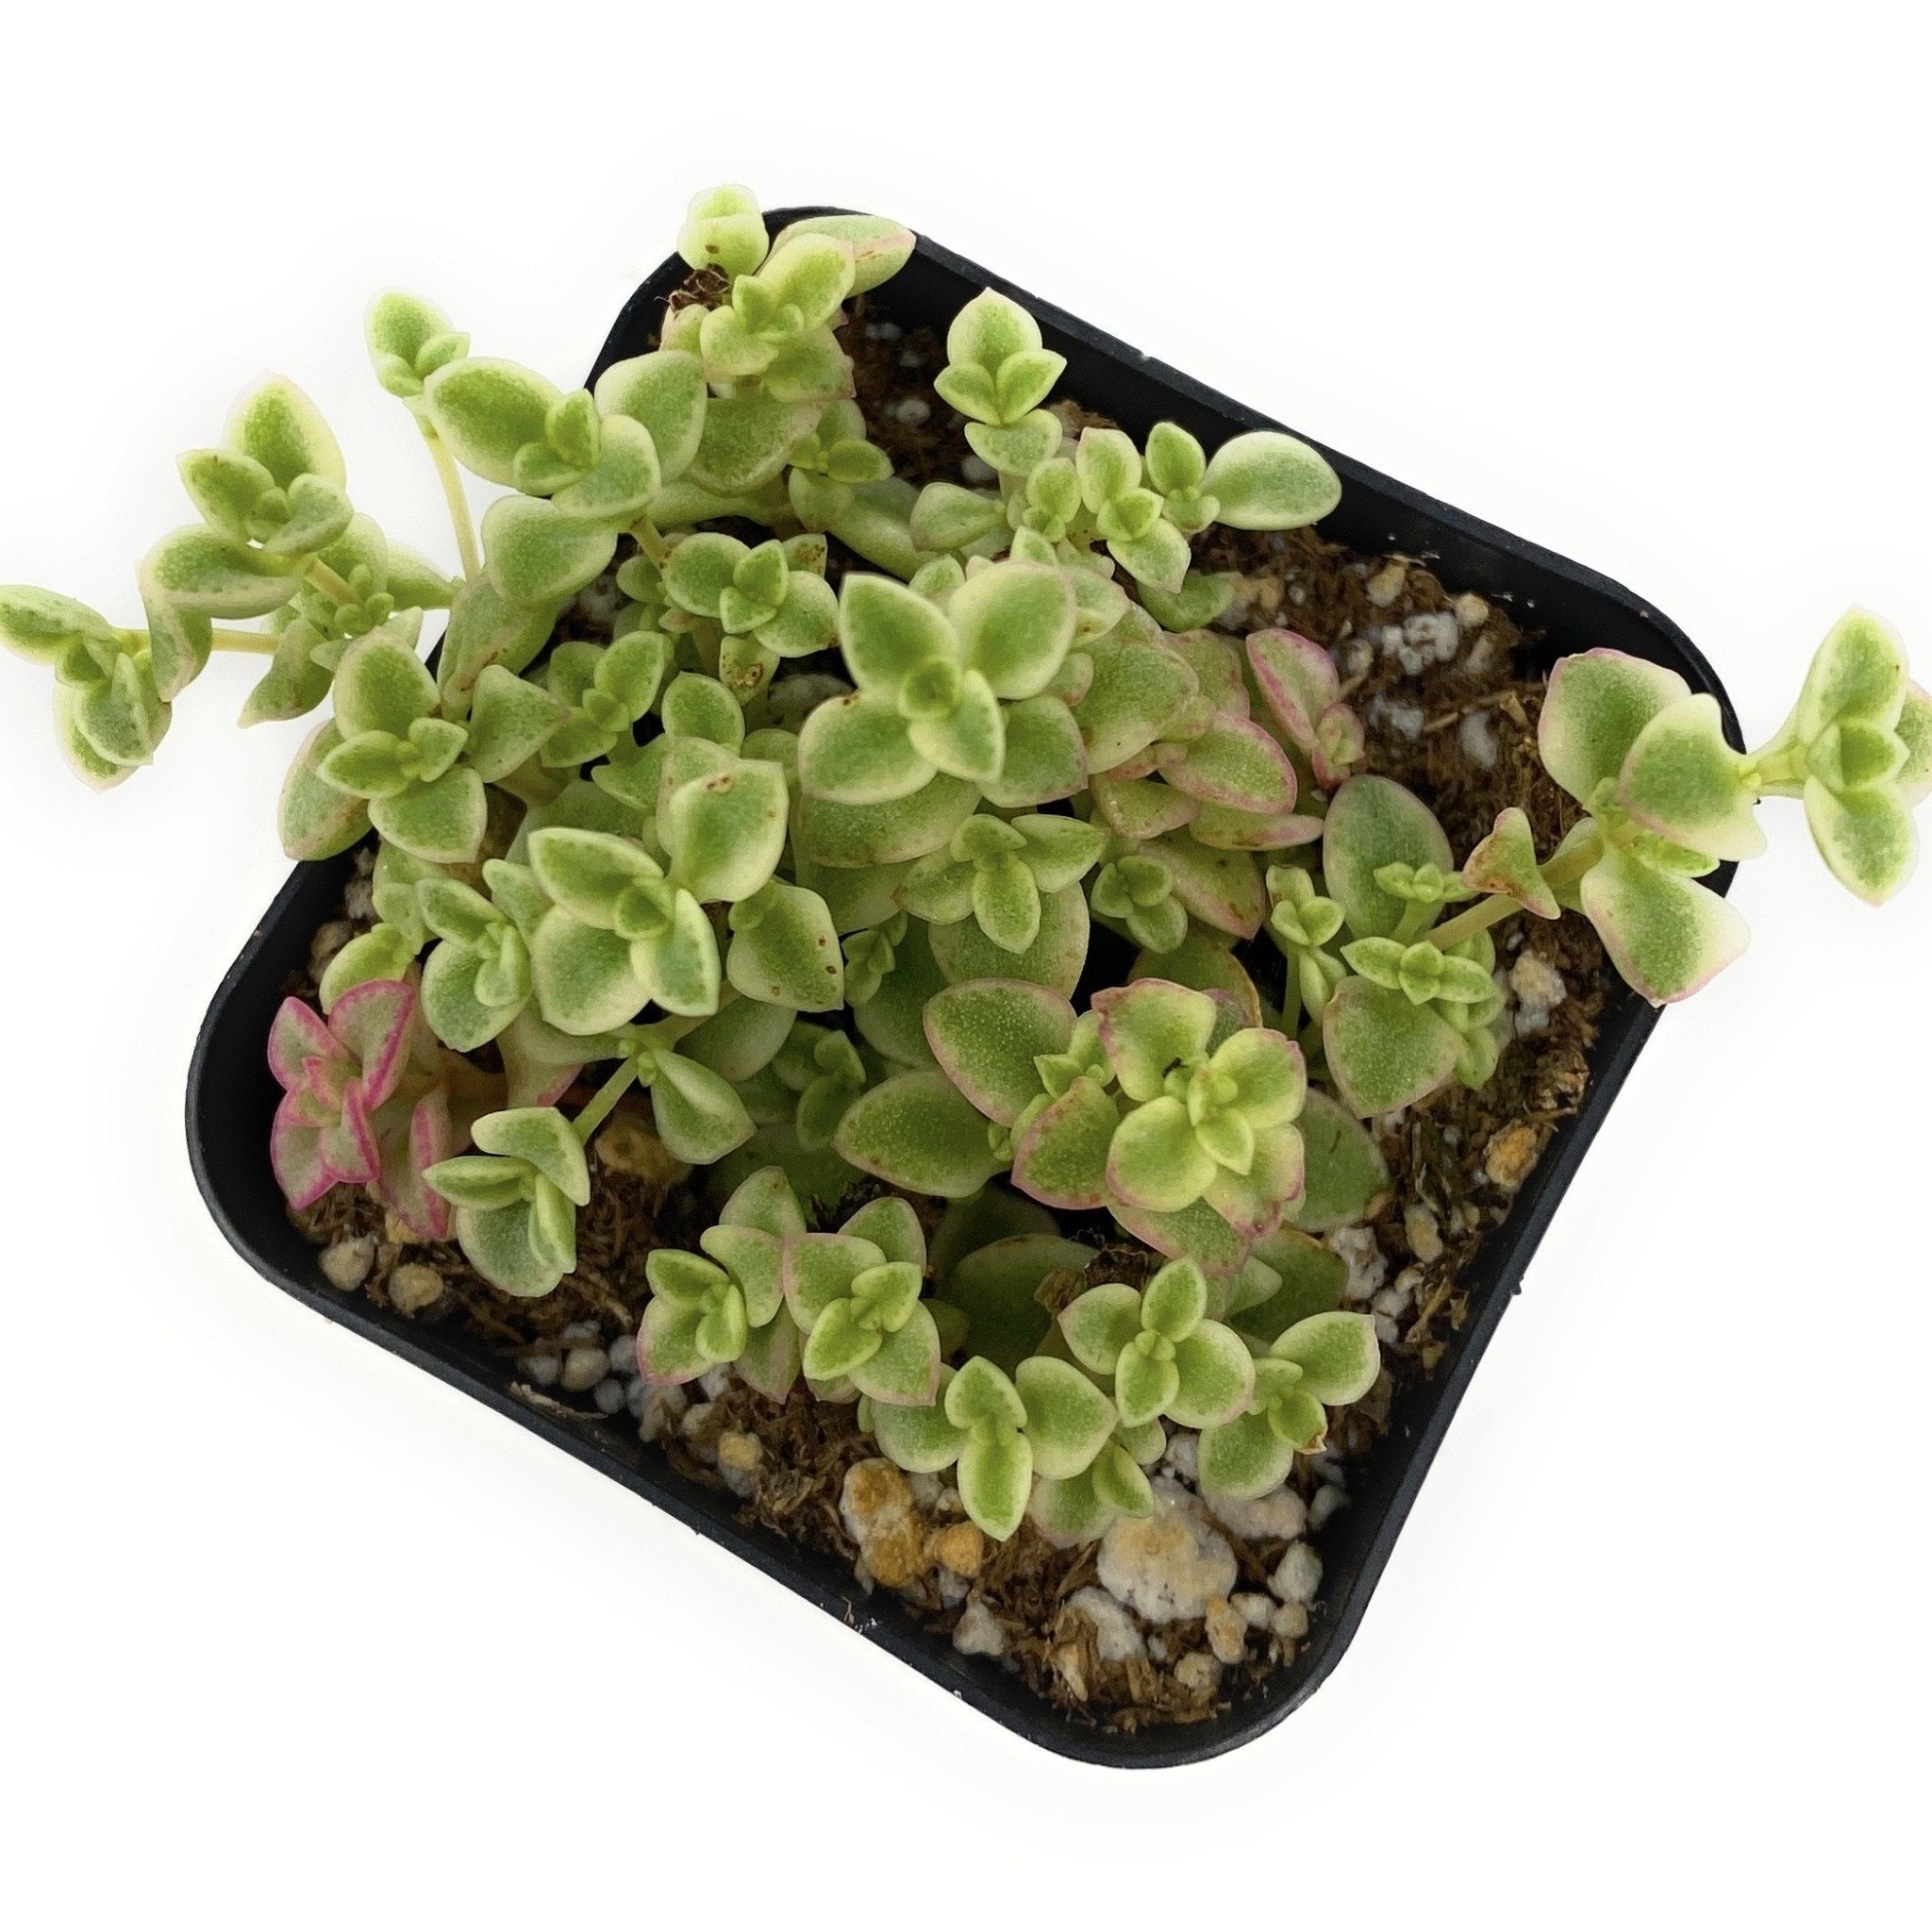 Sedum Little Missy Succulent Plants From Succy Crafts